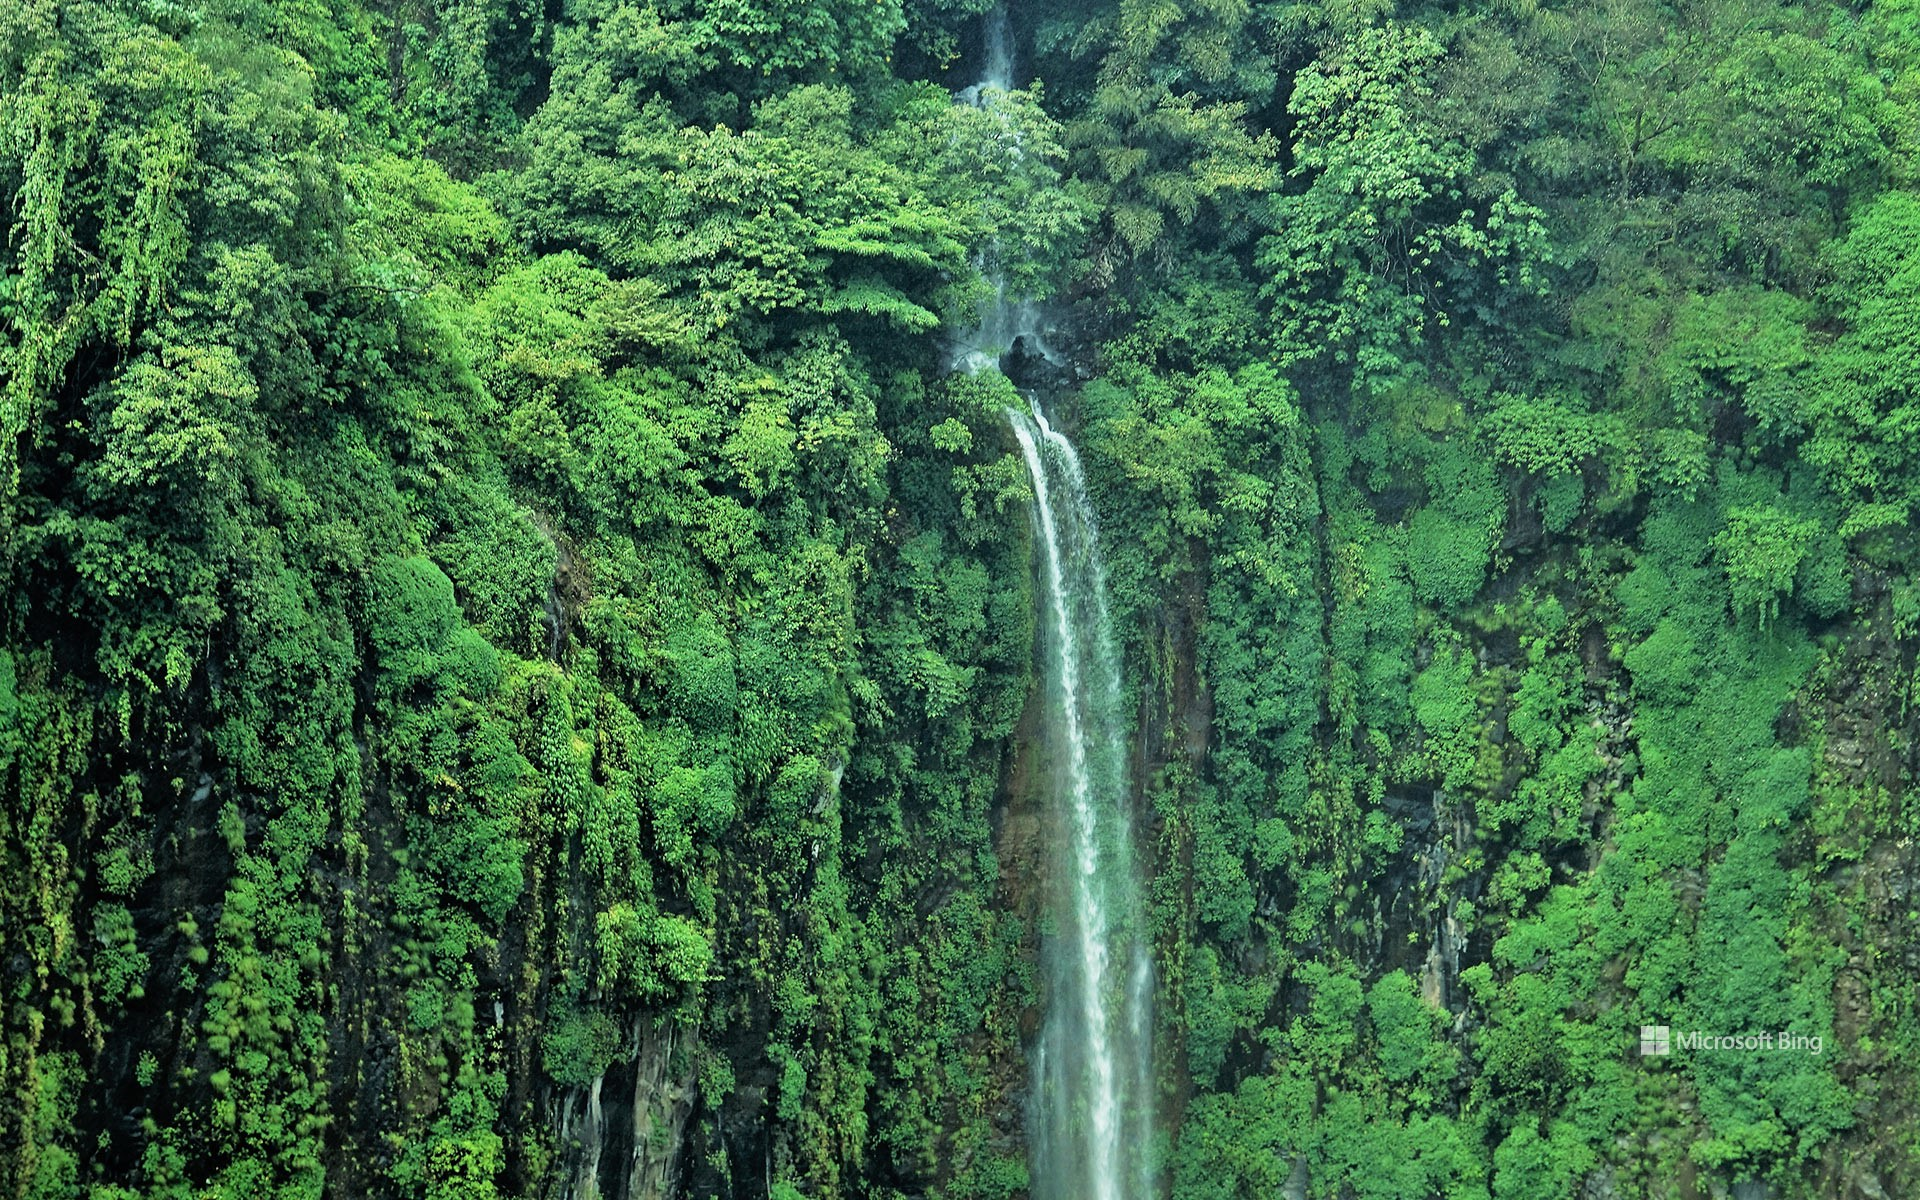 Thoseghar waterfalls in Maharashtra, India